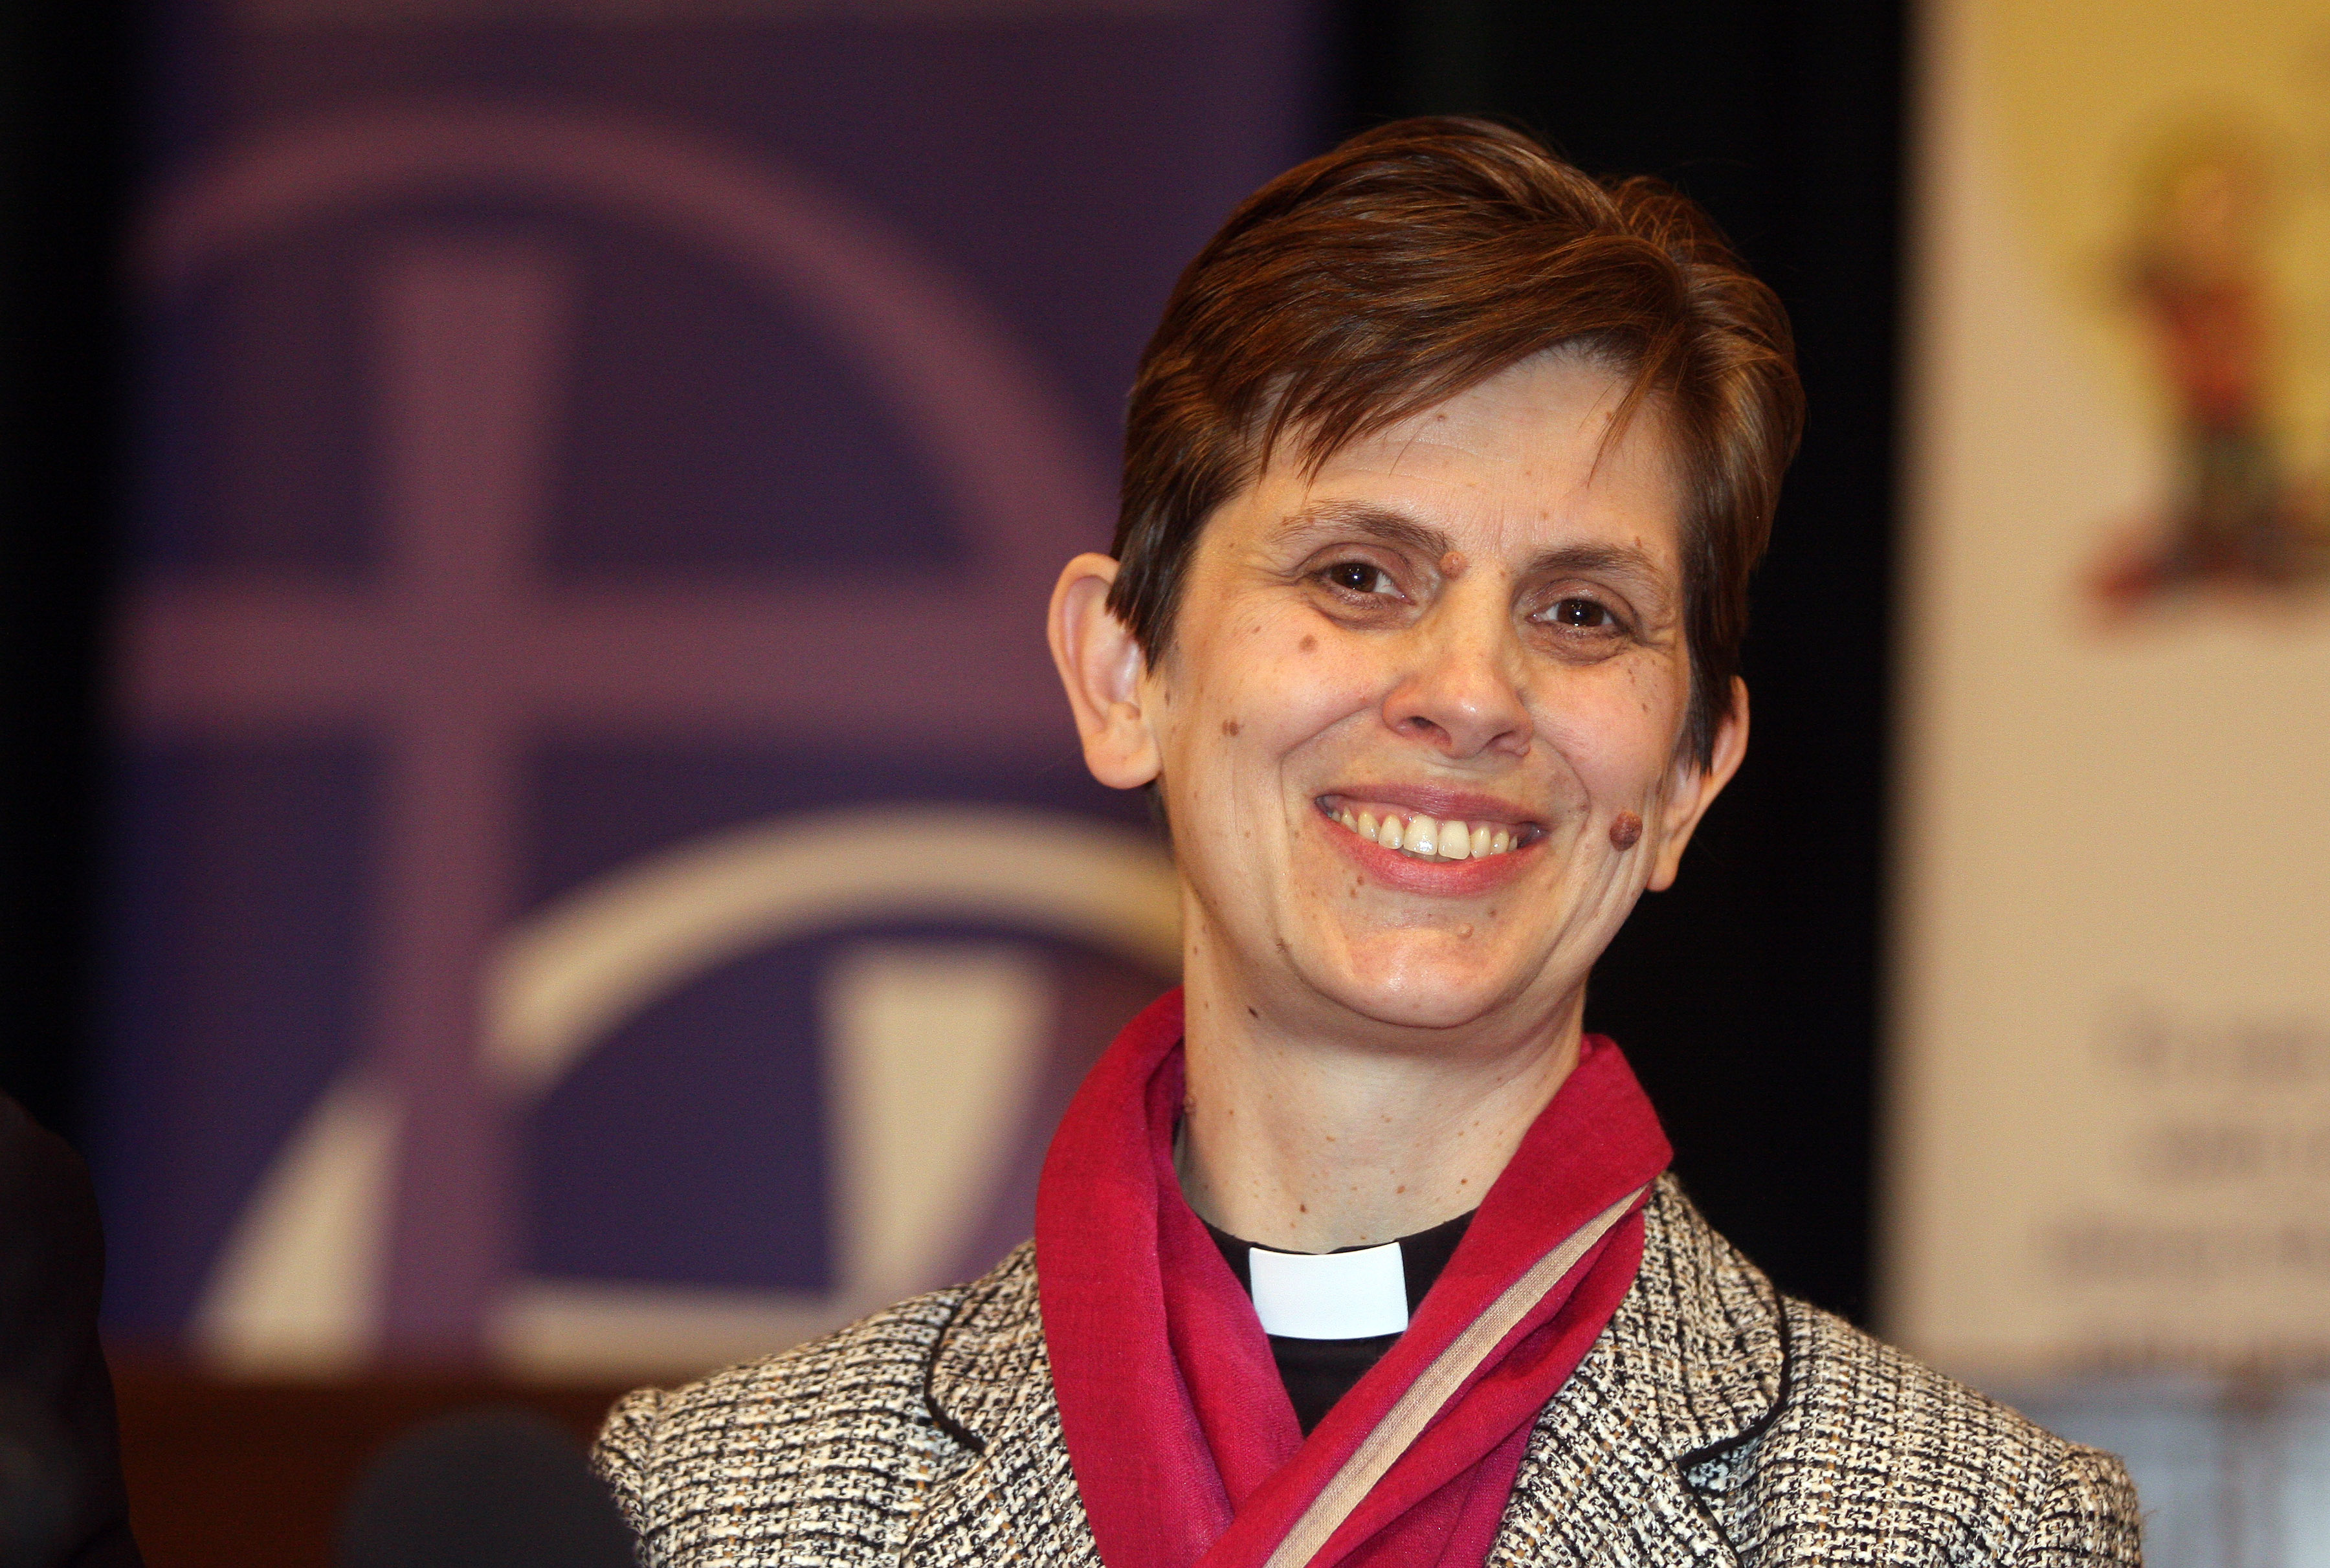 St Peter's alumna to be first female bishop